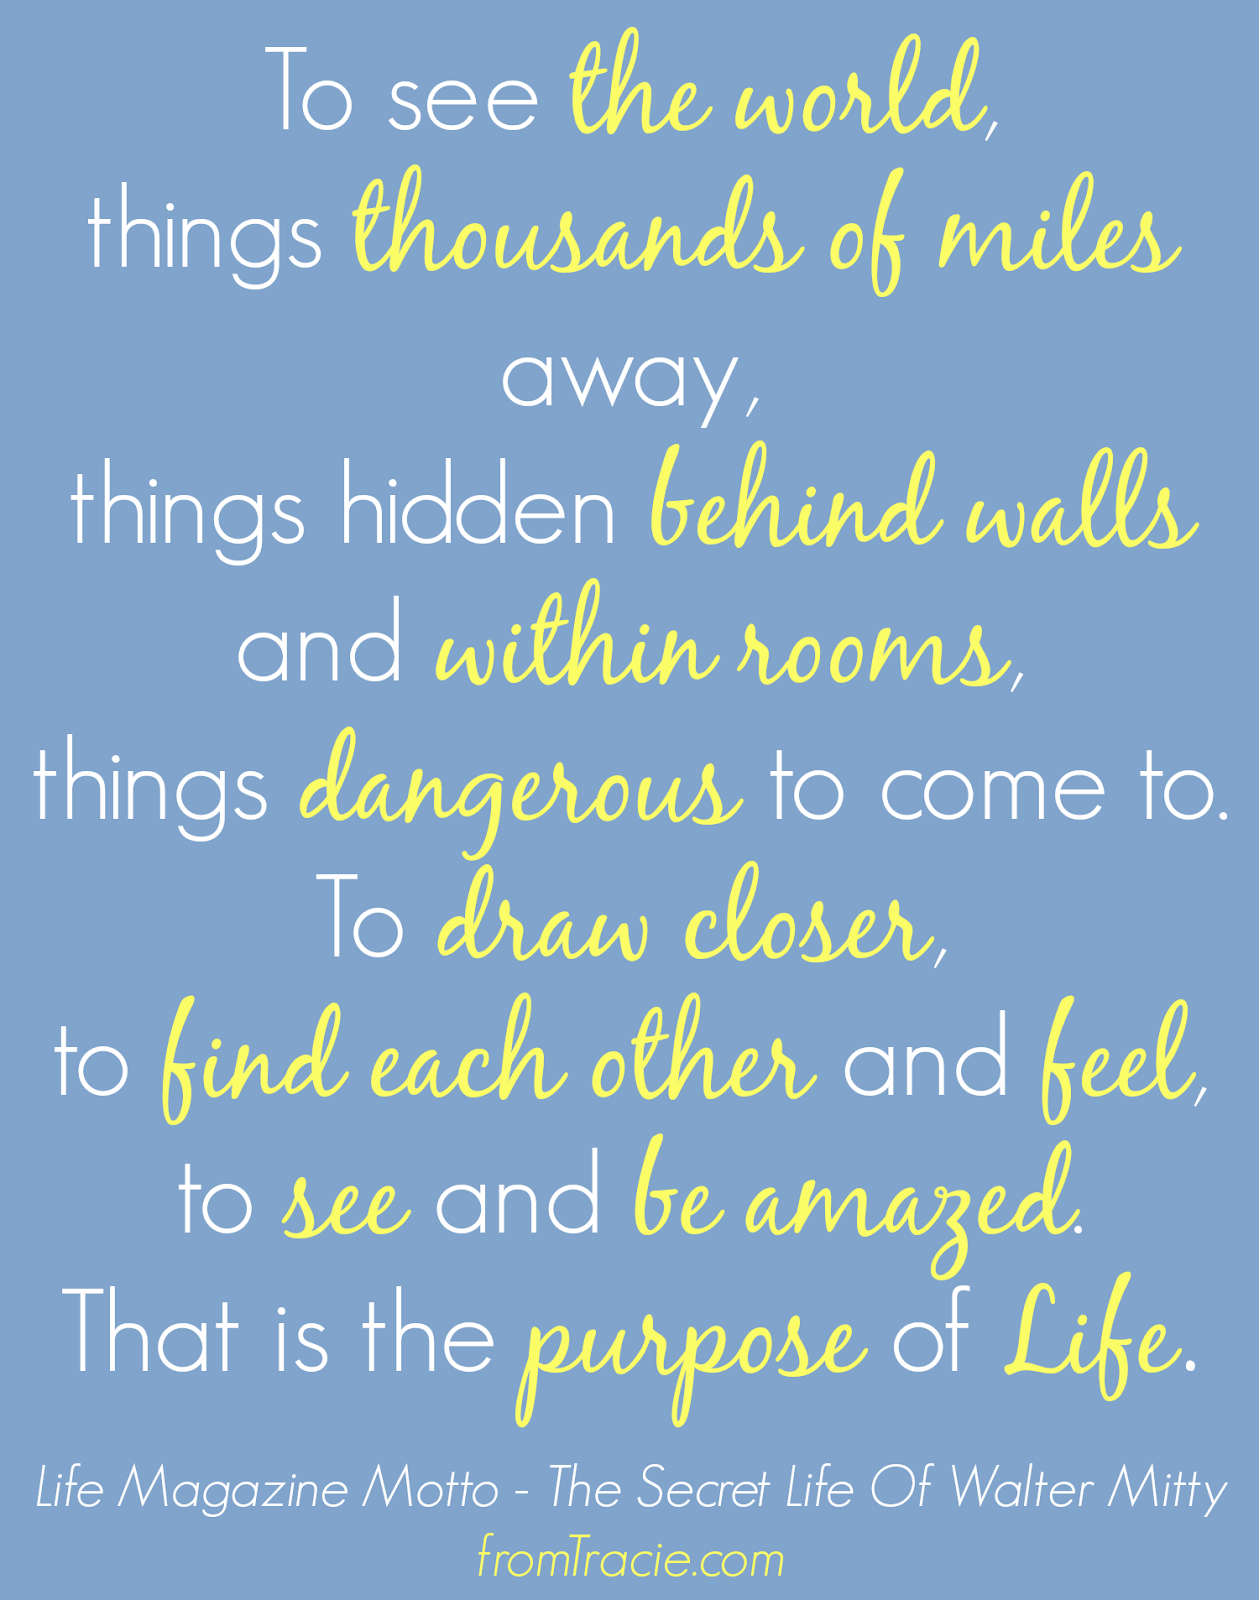 Life Magazine Motto from The Secret Life of Walter Mitty. I loved this movie!